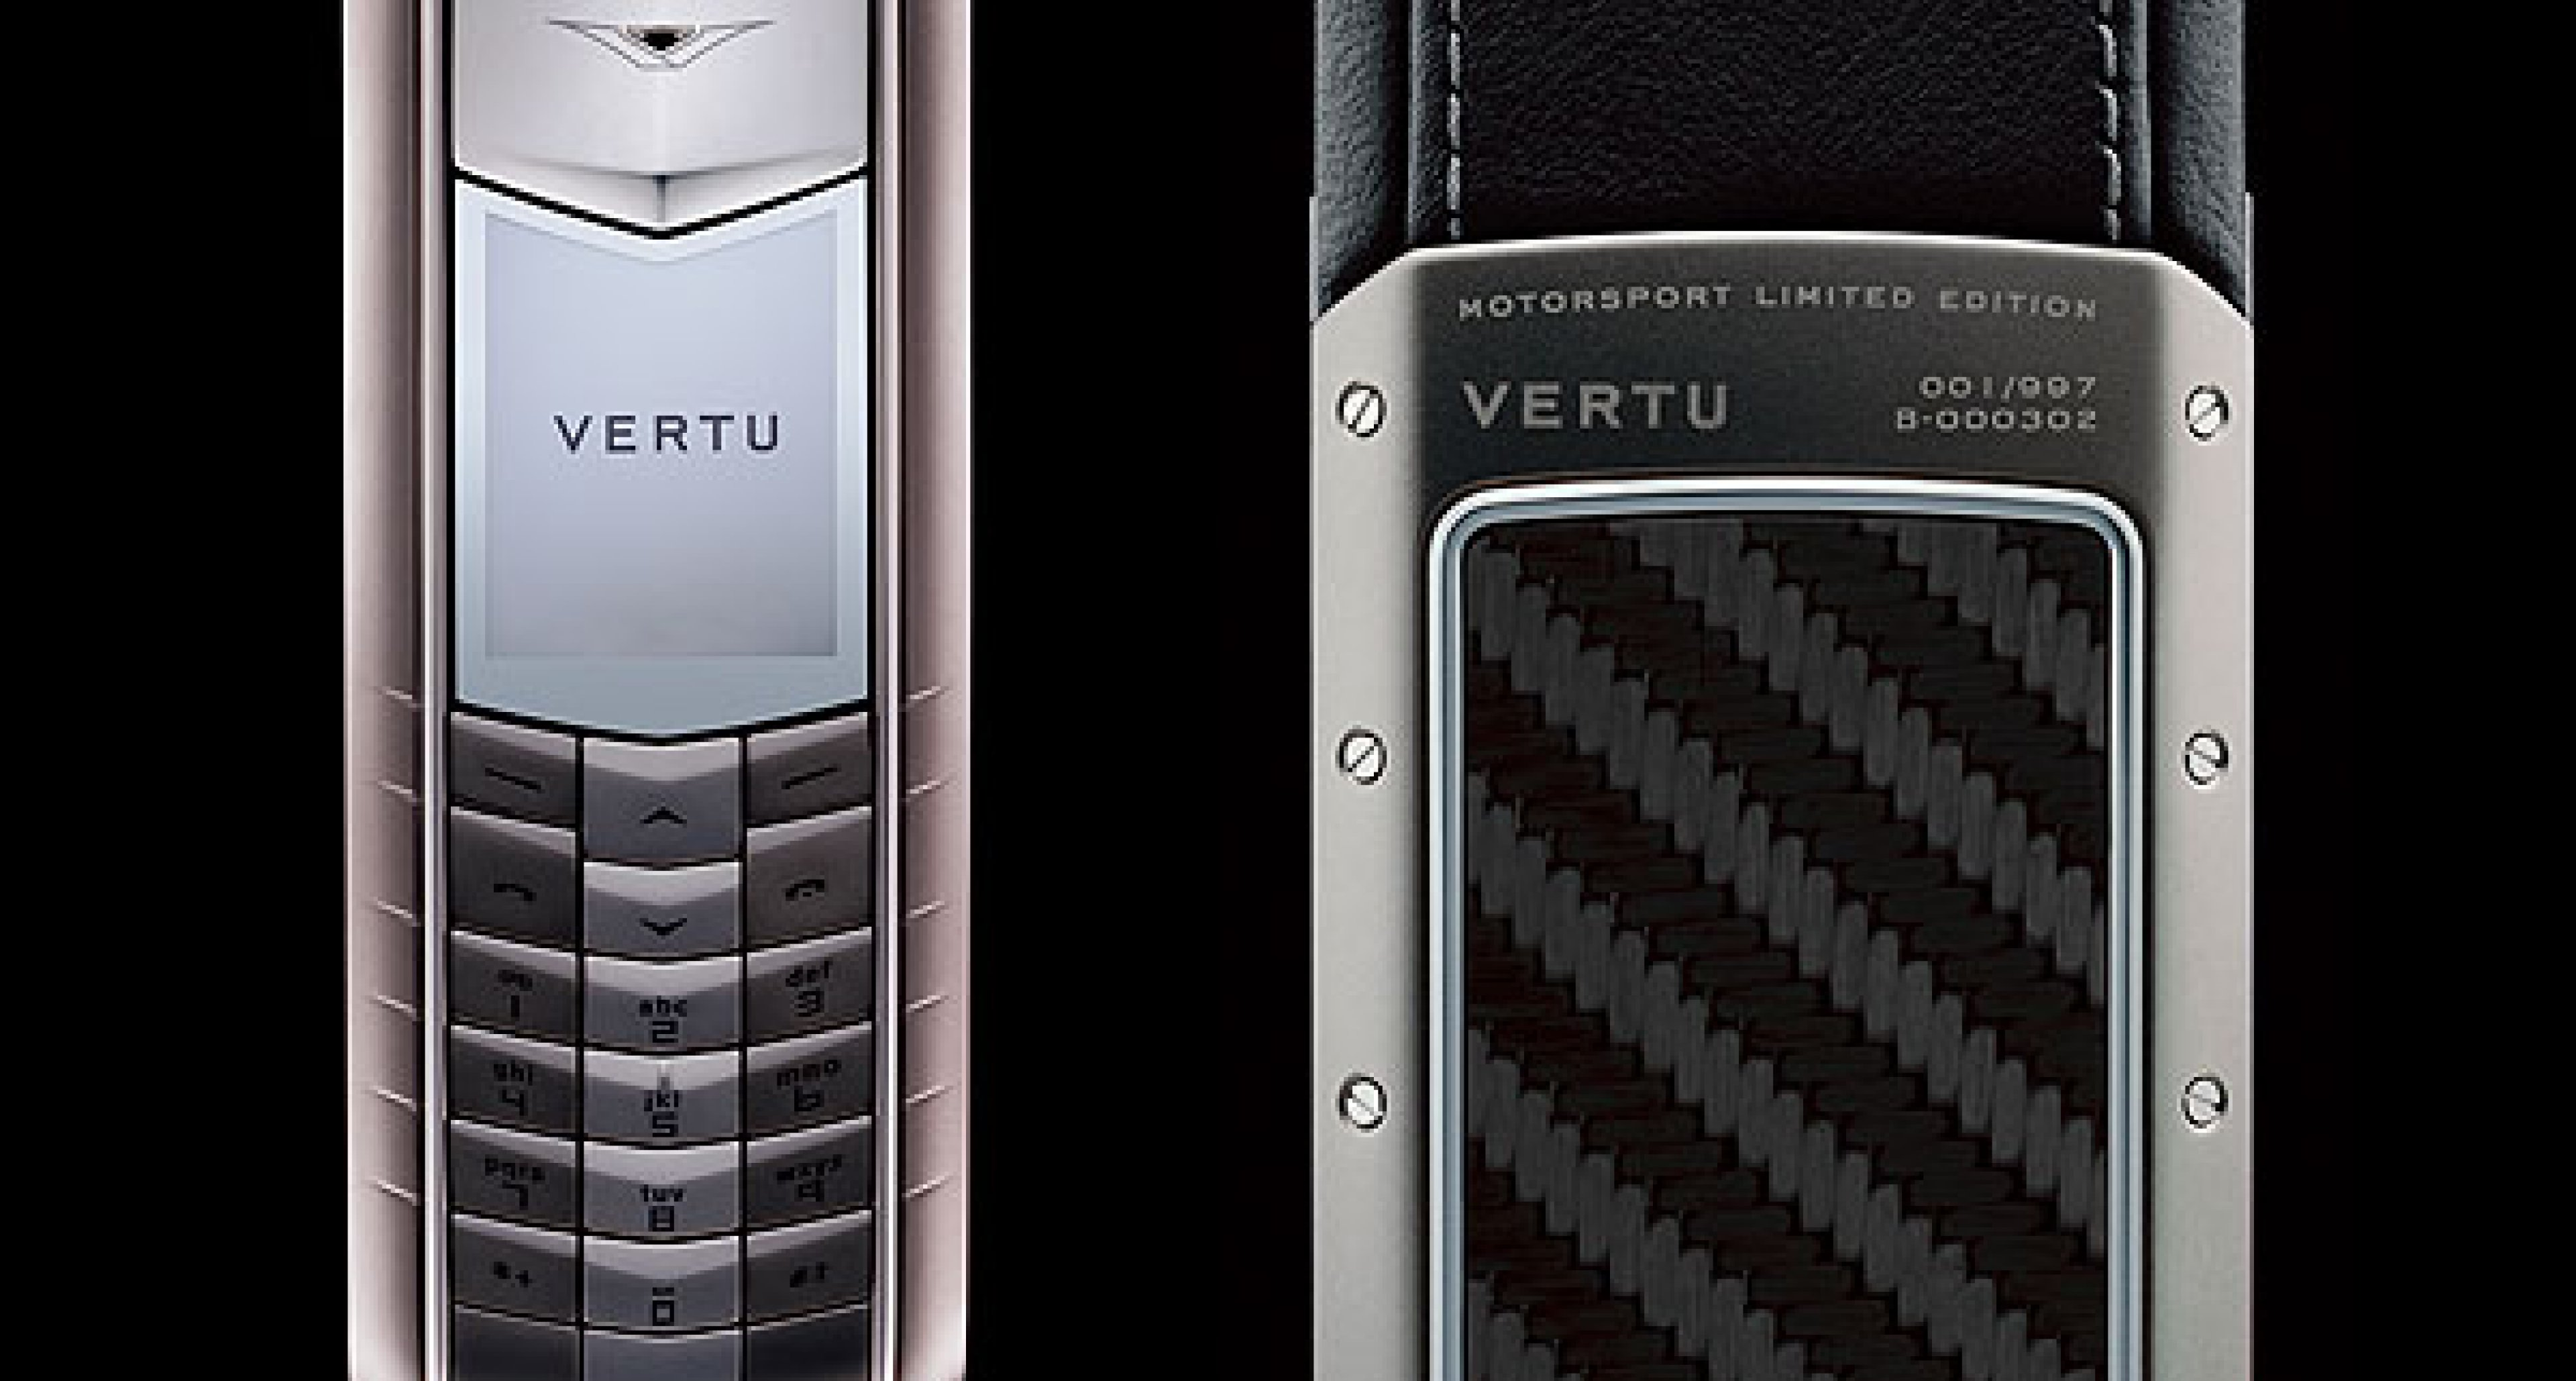 Vertu – Born From an Obsession